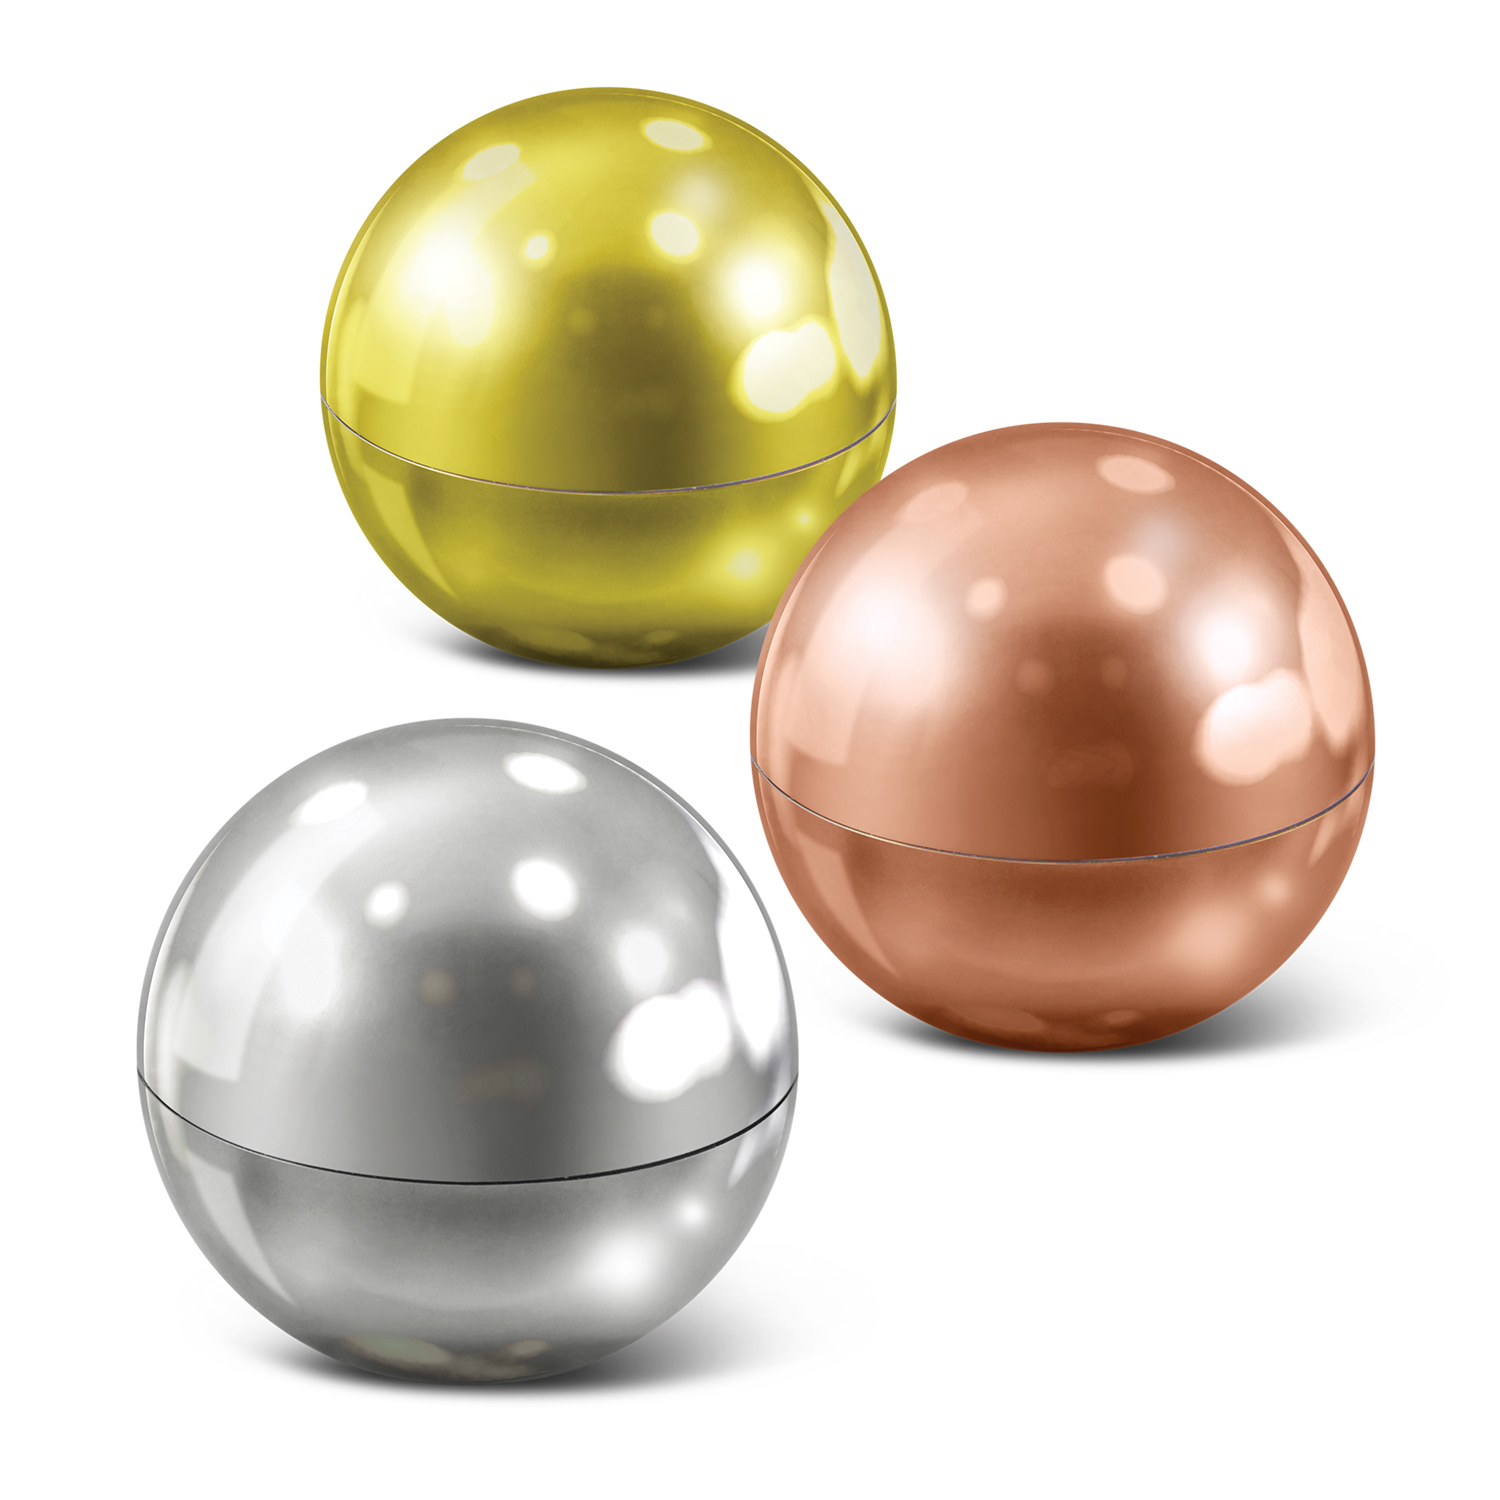 Metallic Lip Balm Ball - Pad Print